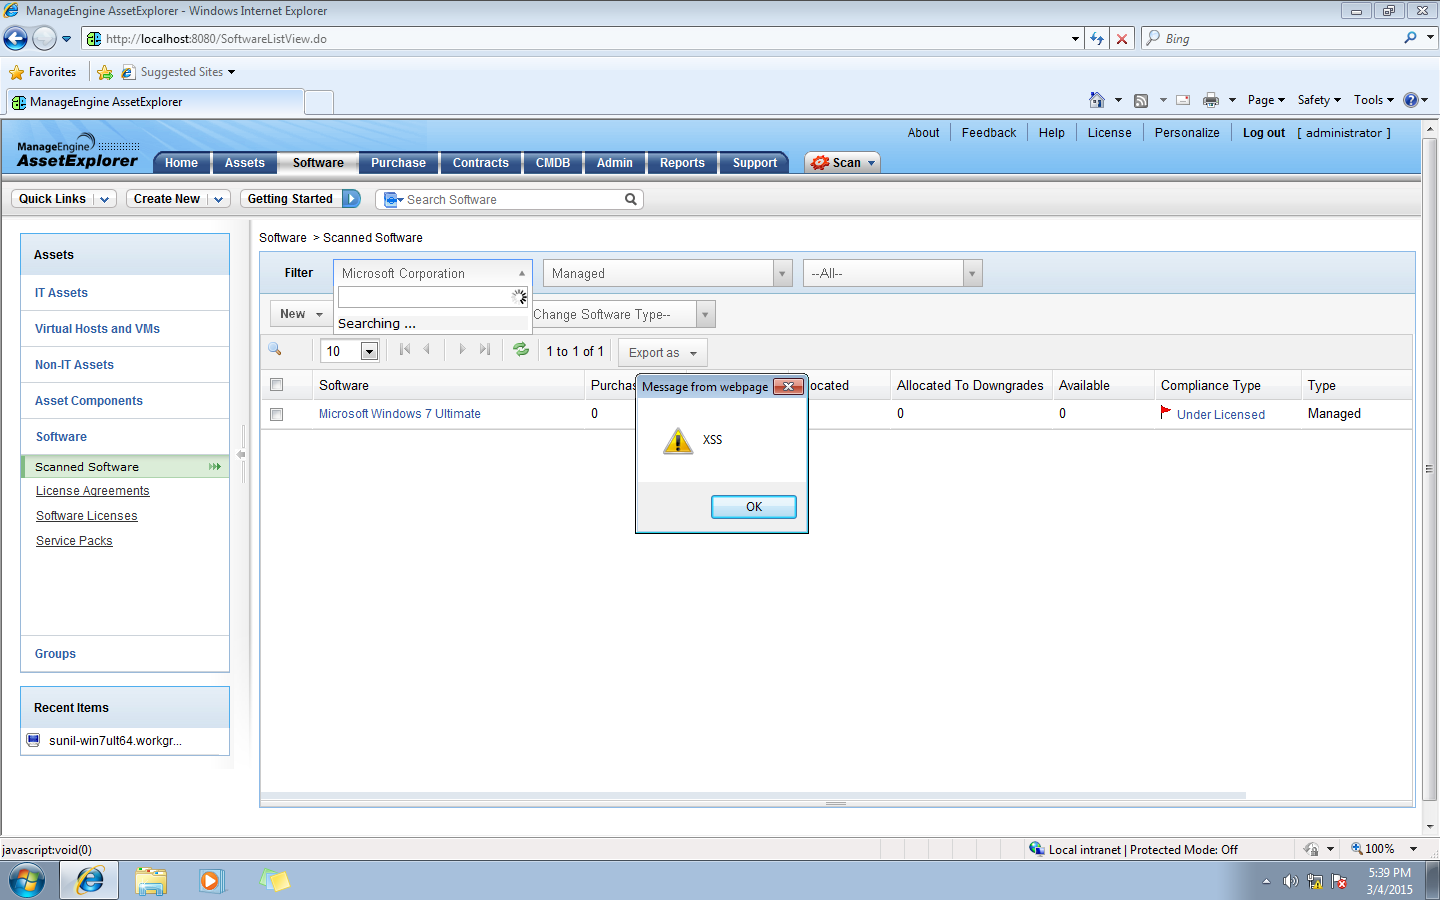 Tech Too Tech: Found XSS vulnerability in Manage Engine